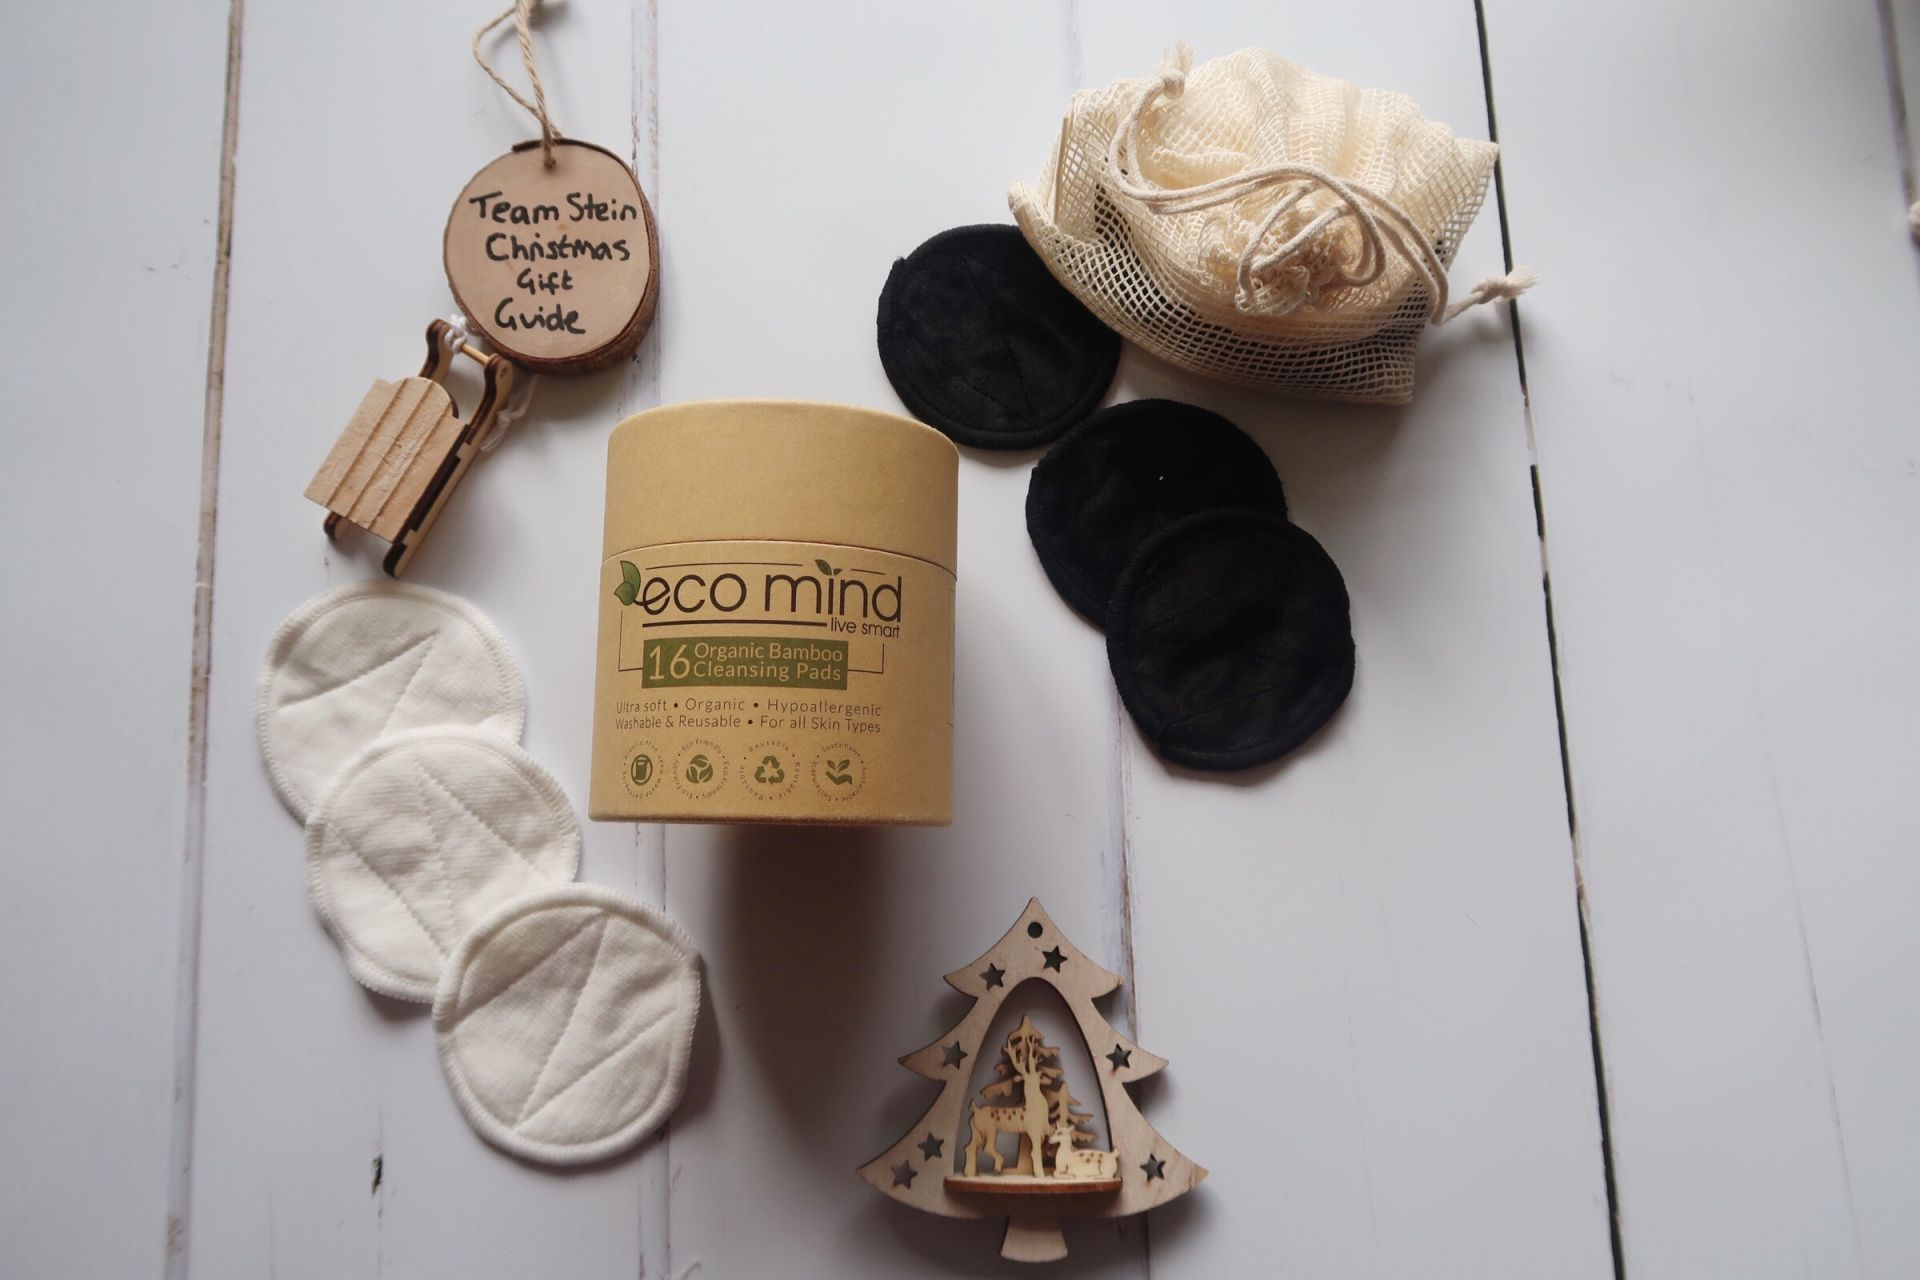 bamboo cleansing pads with cardboard packaging